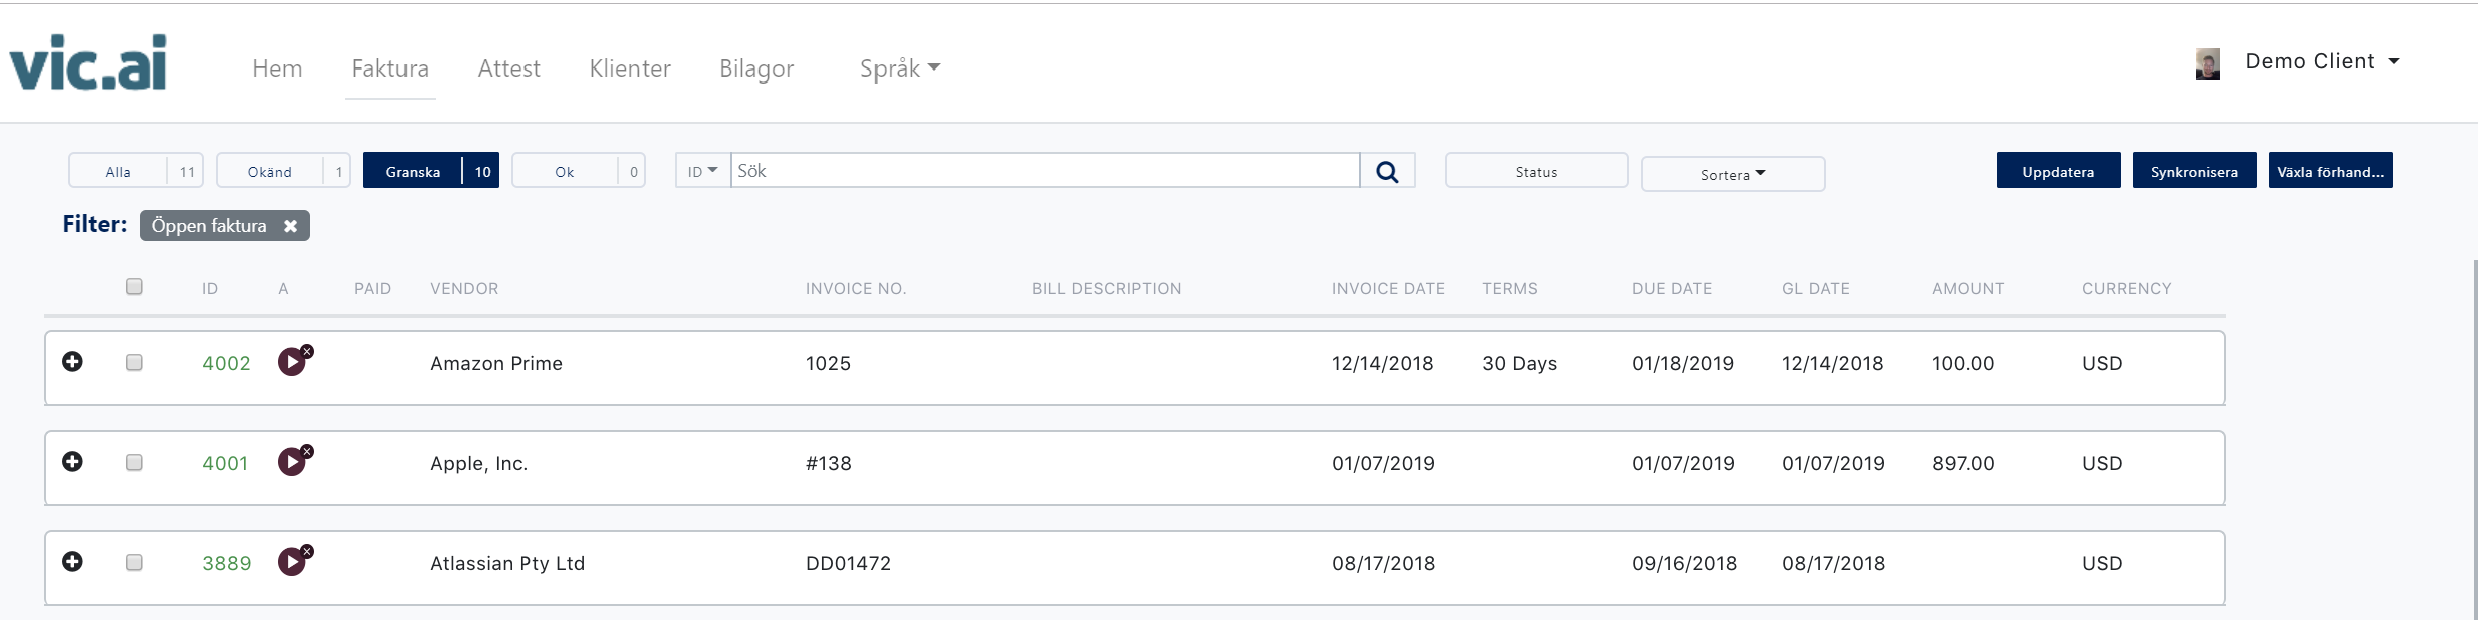 Vic_ai_Dashboard_Invoice_Overview.png